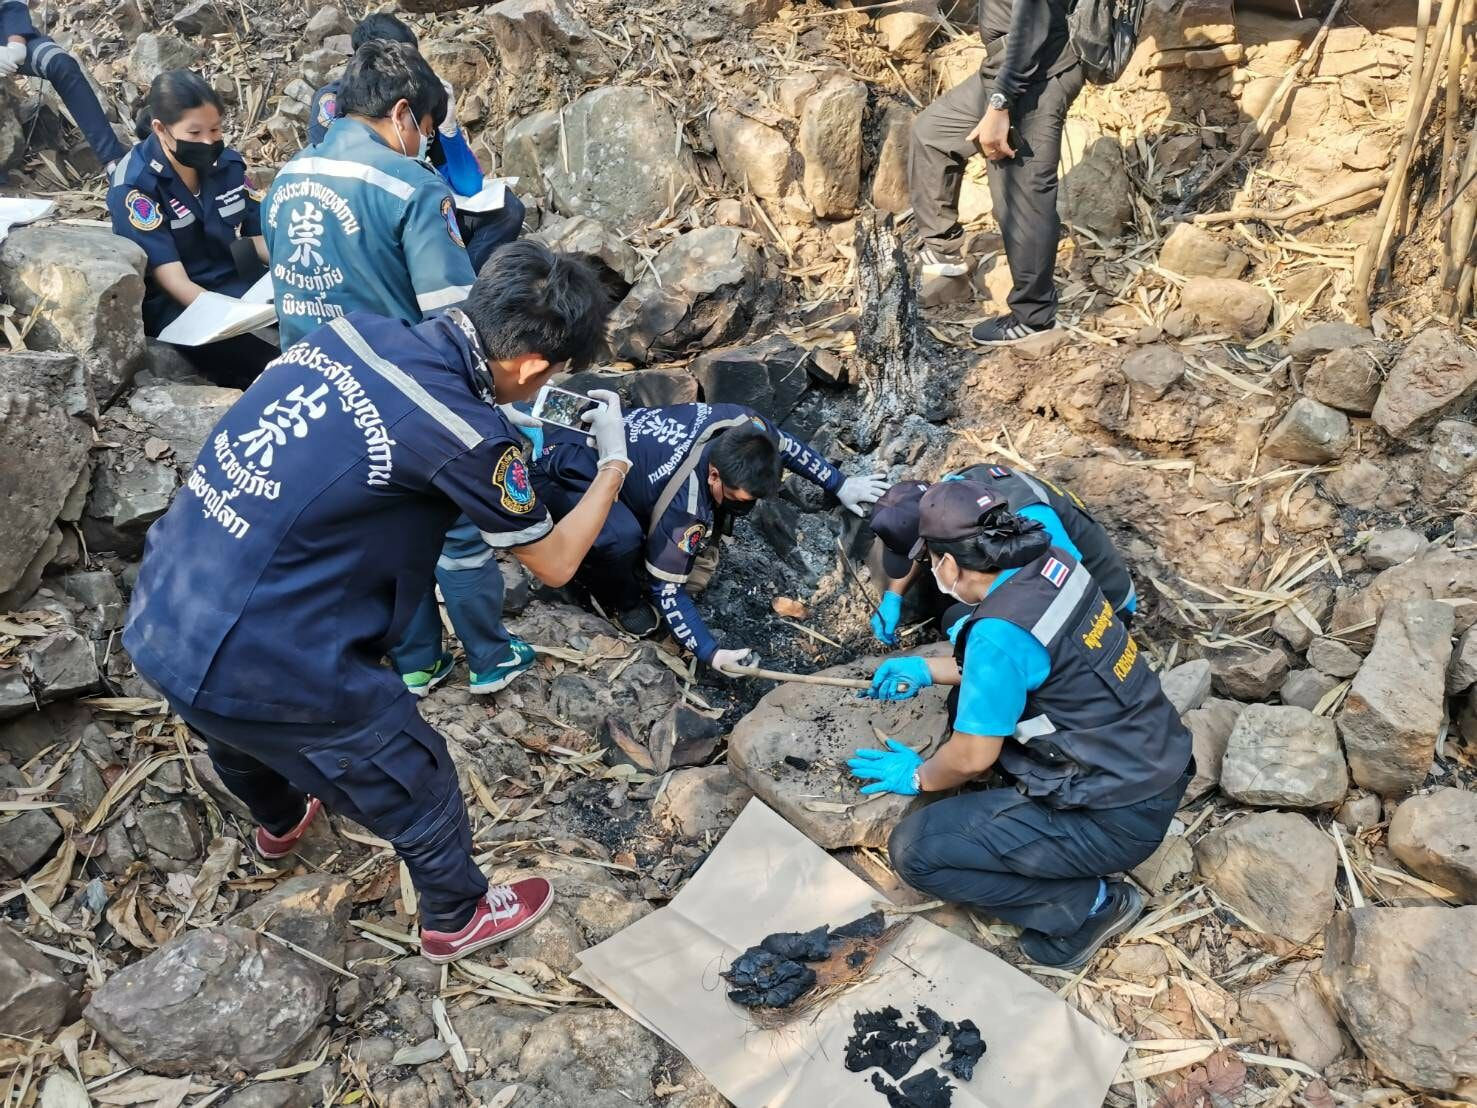 Woman's charred remains found near northern Thailand rubber plantation | Thaiger